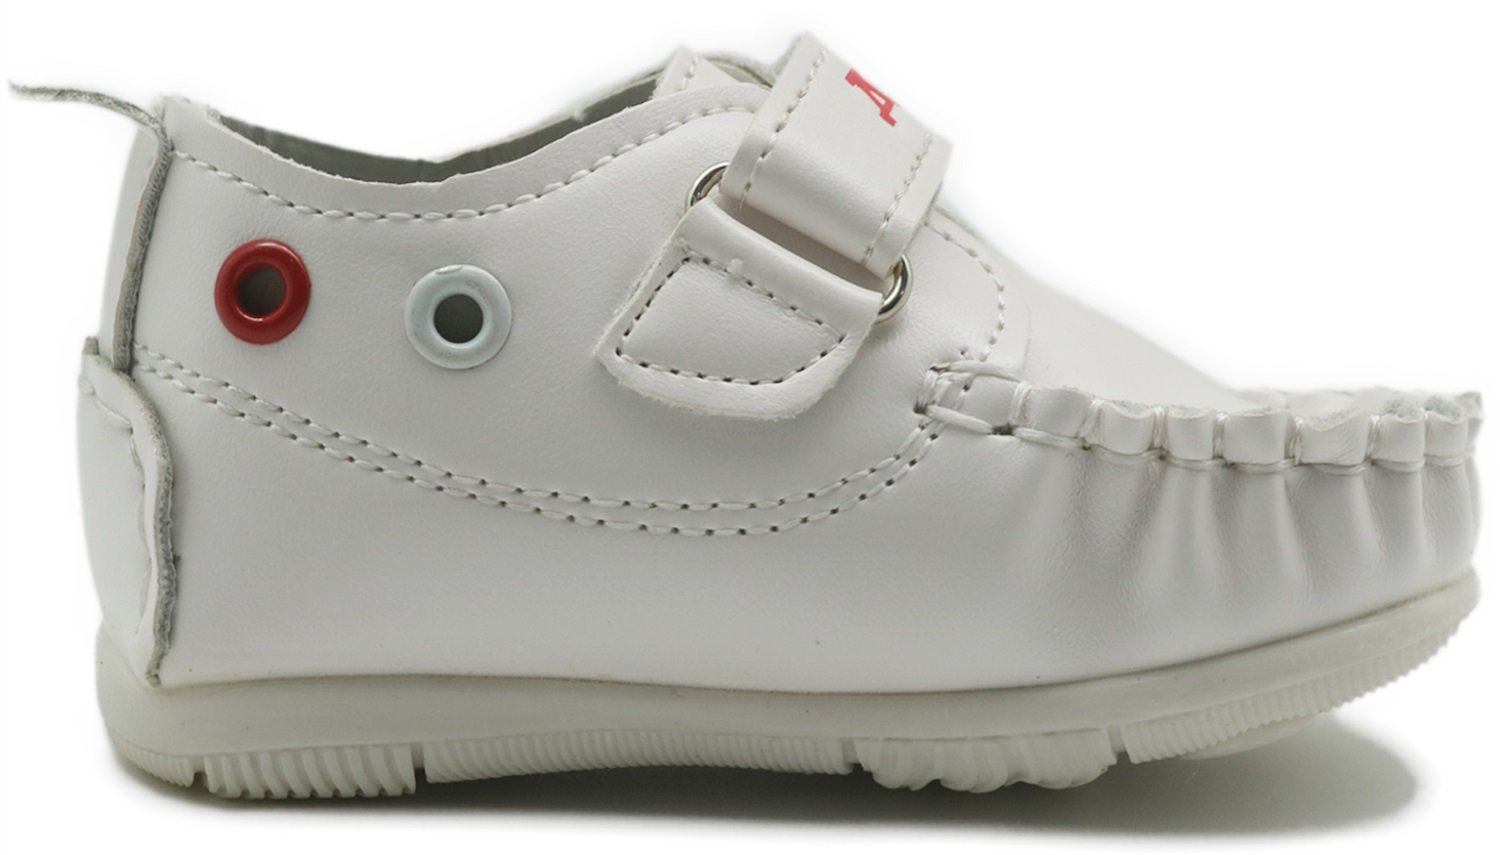 Non-Slip Boys Girls Rubber Sole Sneaker First Walkers Shoes Infant Casual Shoes Durable Color : White , Size : 5.5 M US Toddler